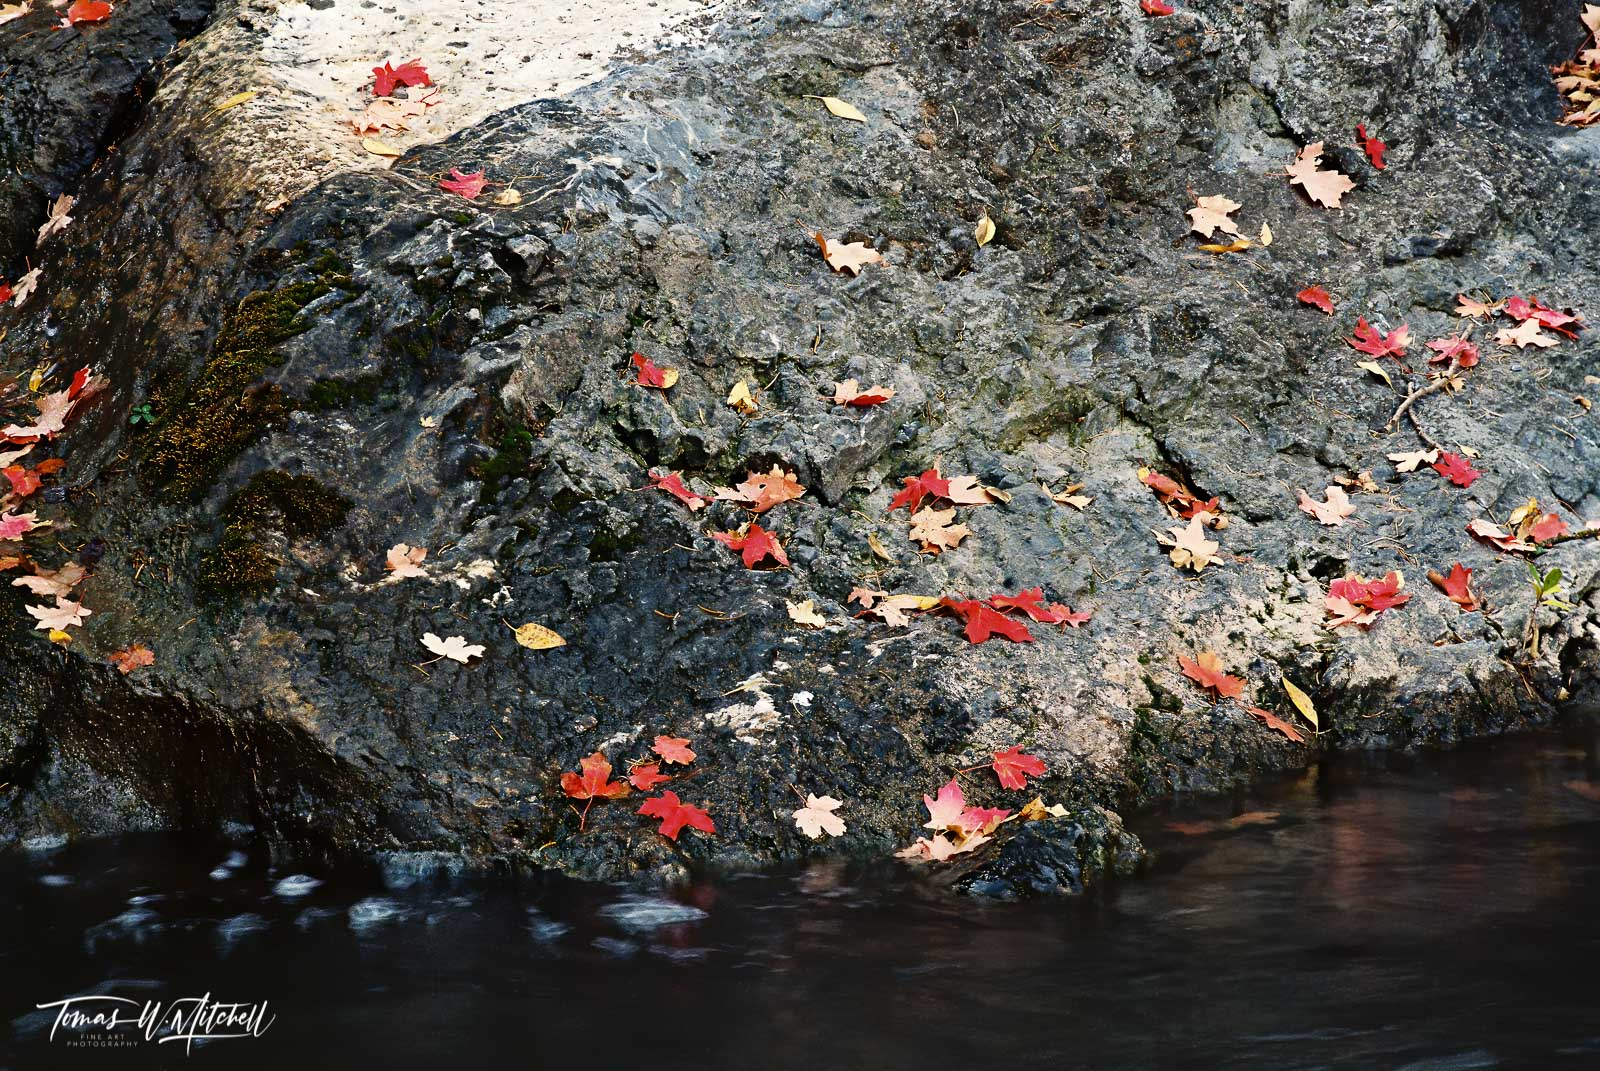 limied edition, fine art, prints, canvas, photograph, film, santaquin canyon, utah, creek, maple trees, colors, falling leaves, dark, rock, water, red, contrast, photo